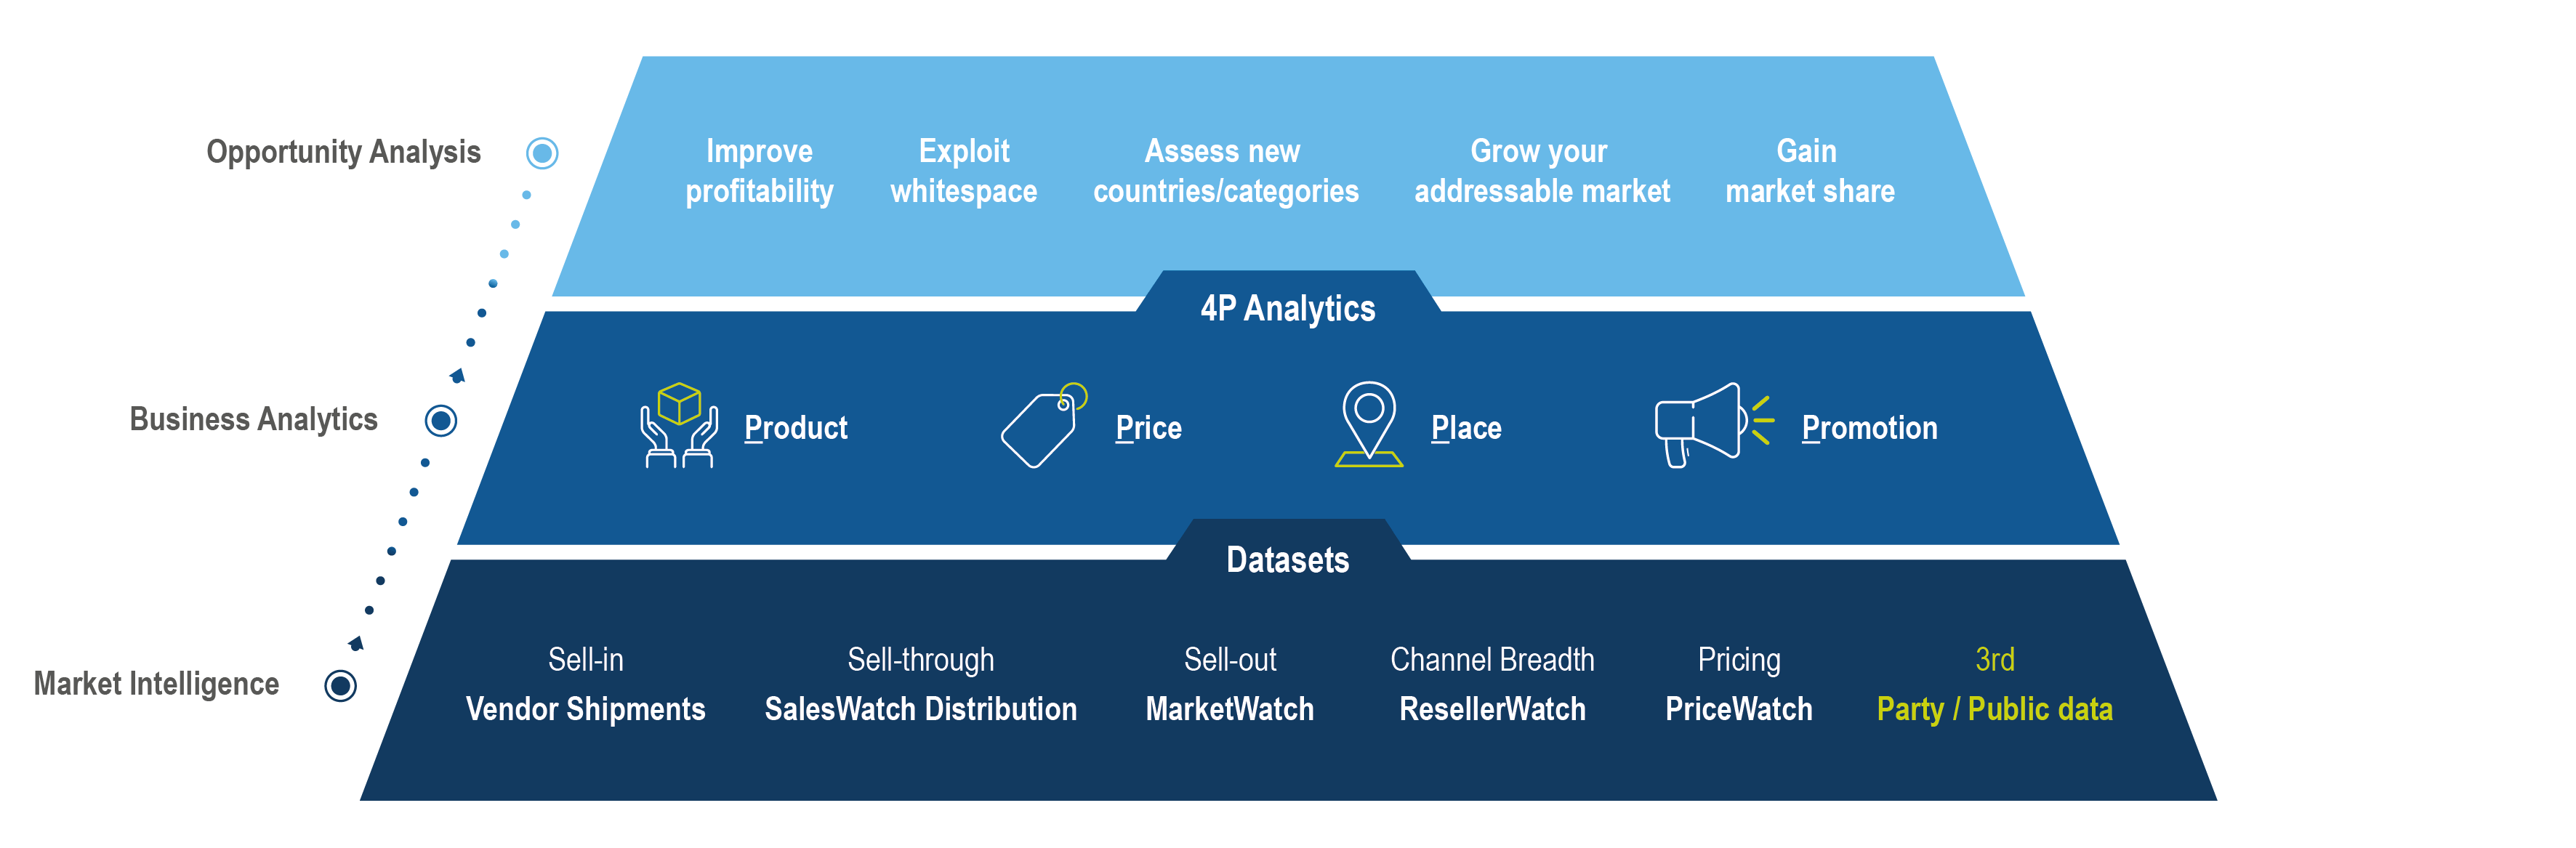 Solve your 4P challenges with tailored analytics solutions </br>built on a normalised view of the complete market